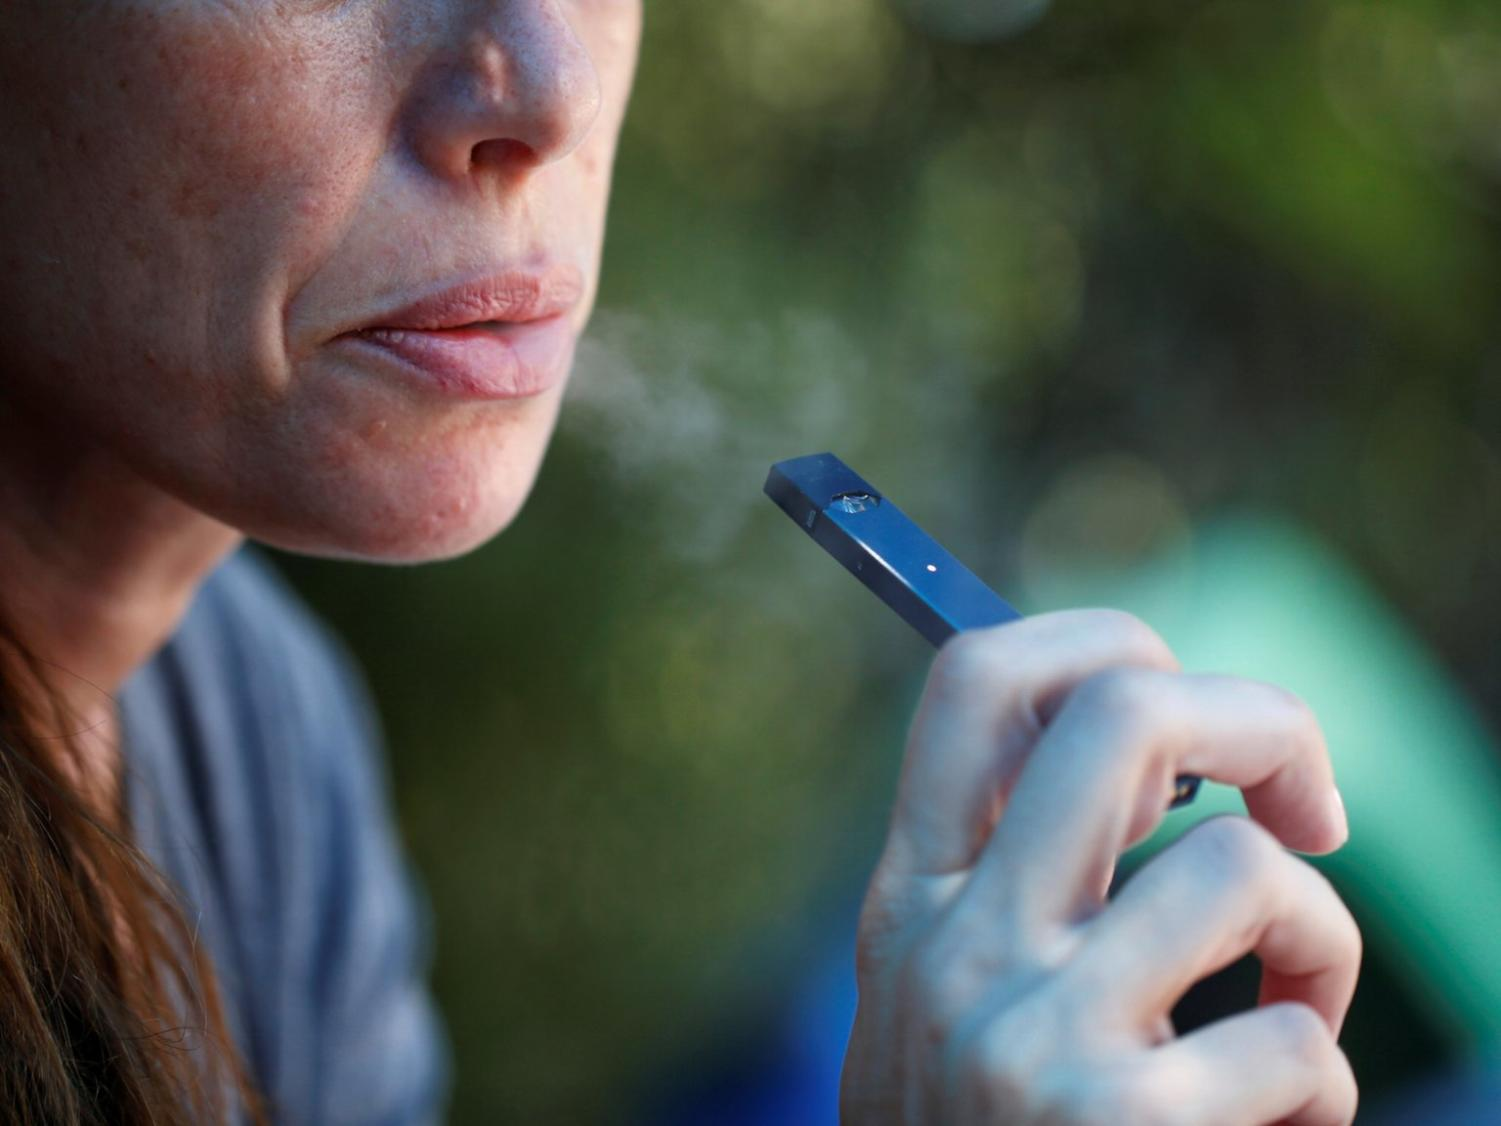 Though e-cigarettes were marketed as a safer alternative to traditional tobacco products, they still contain high levels of nicotine.